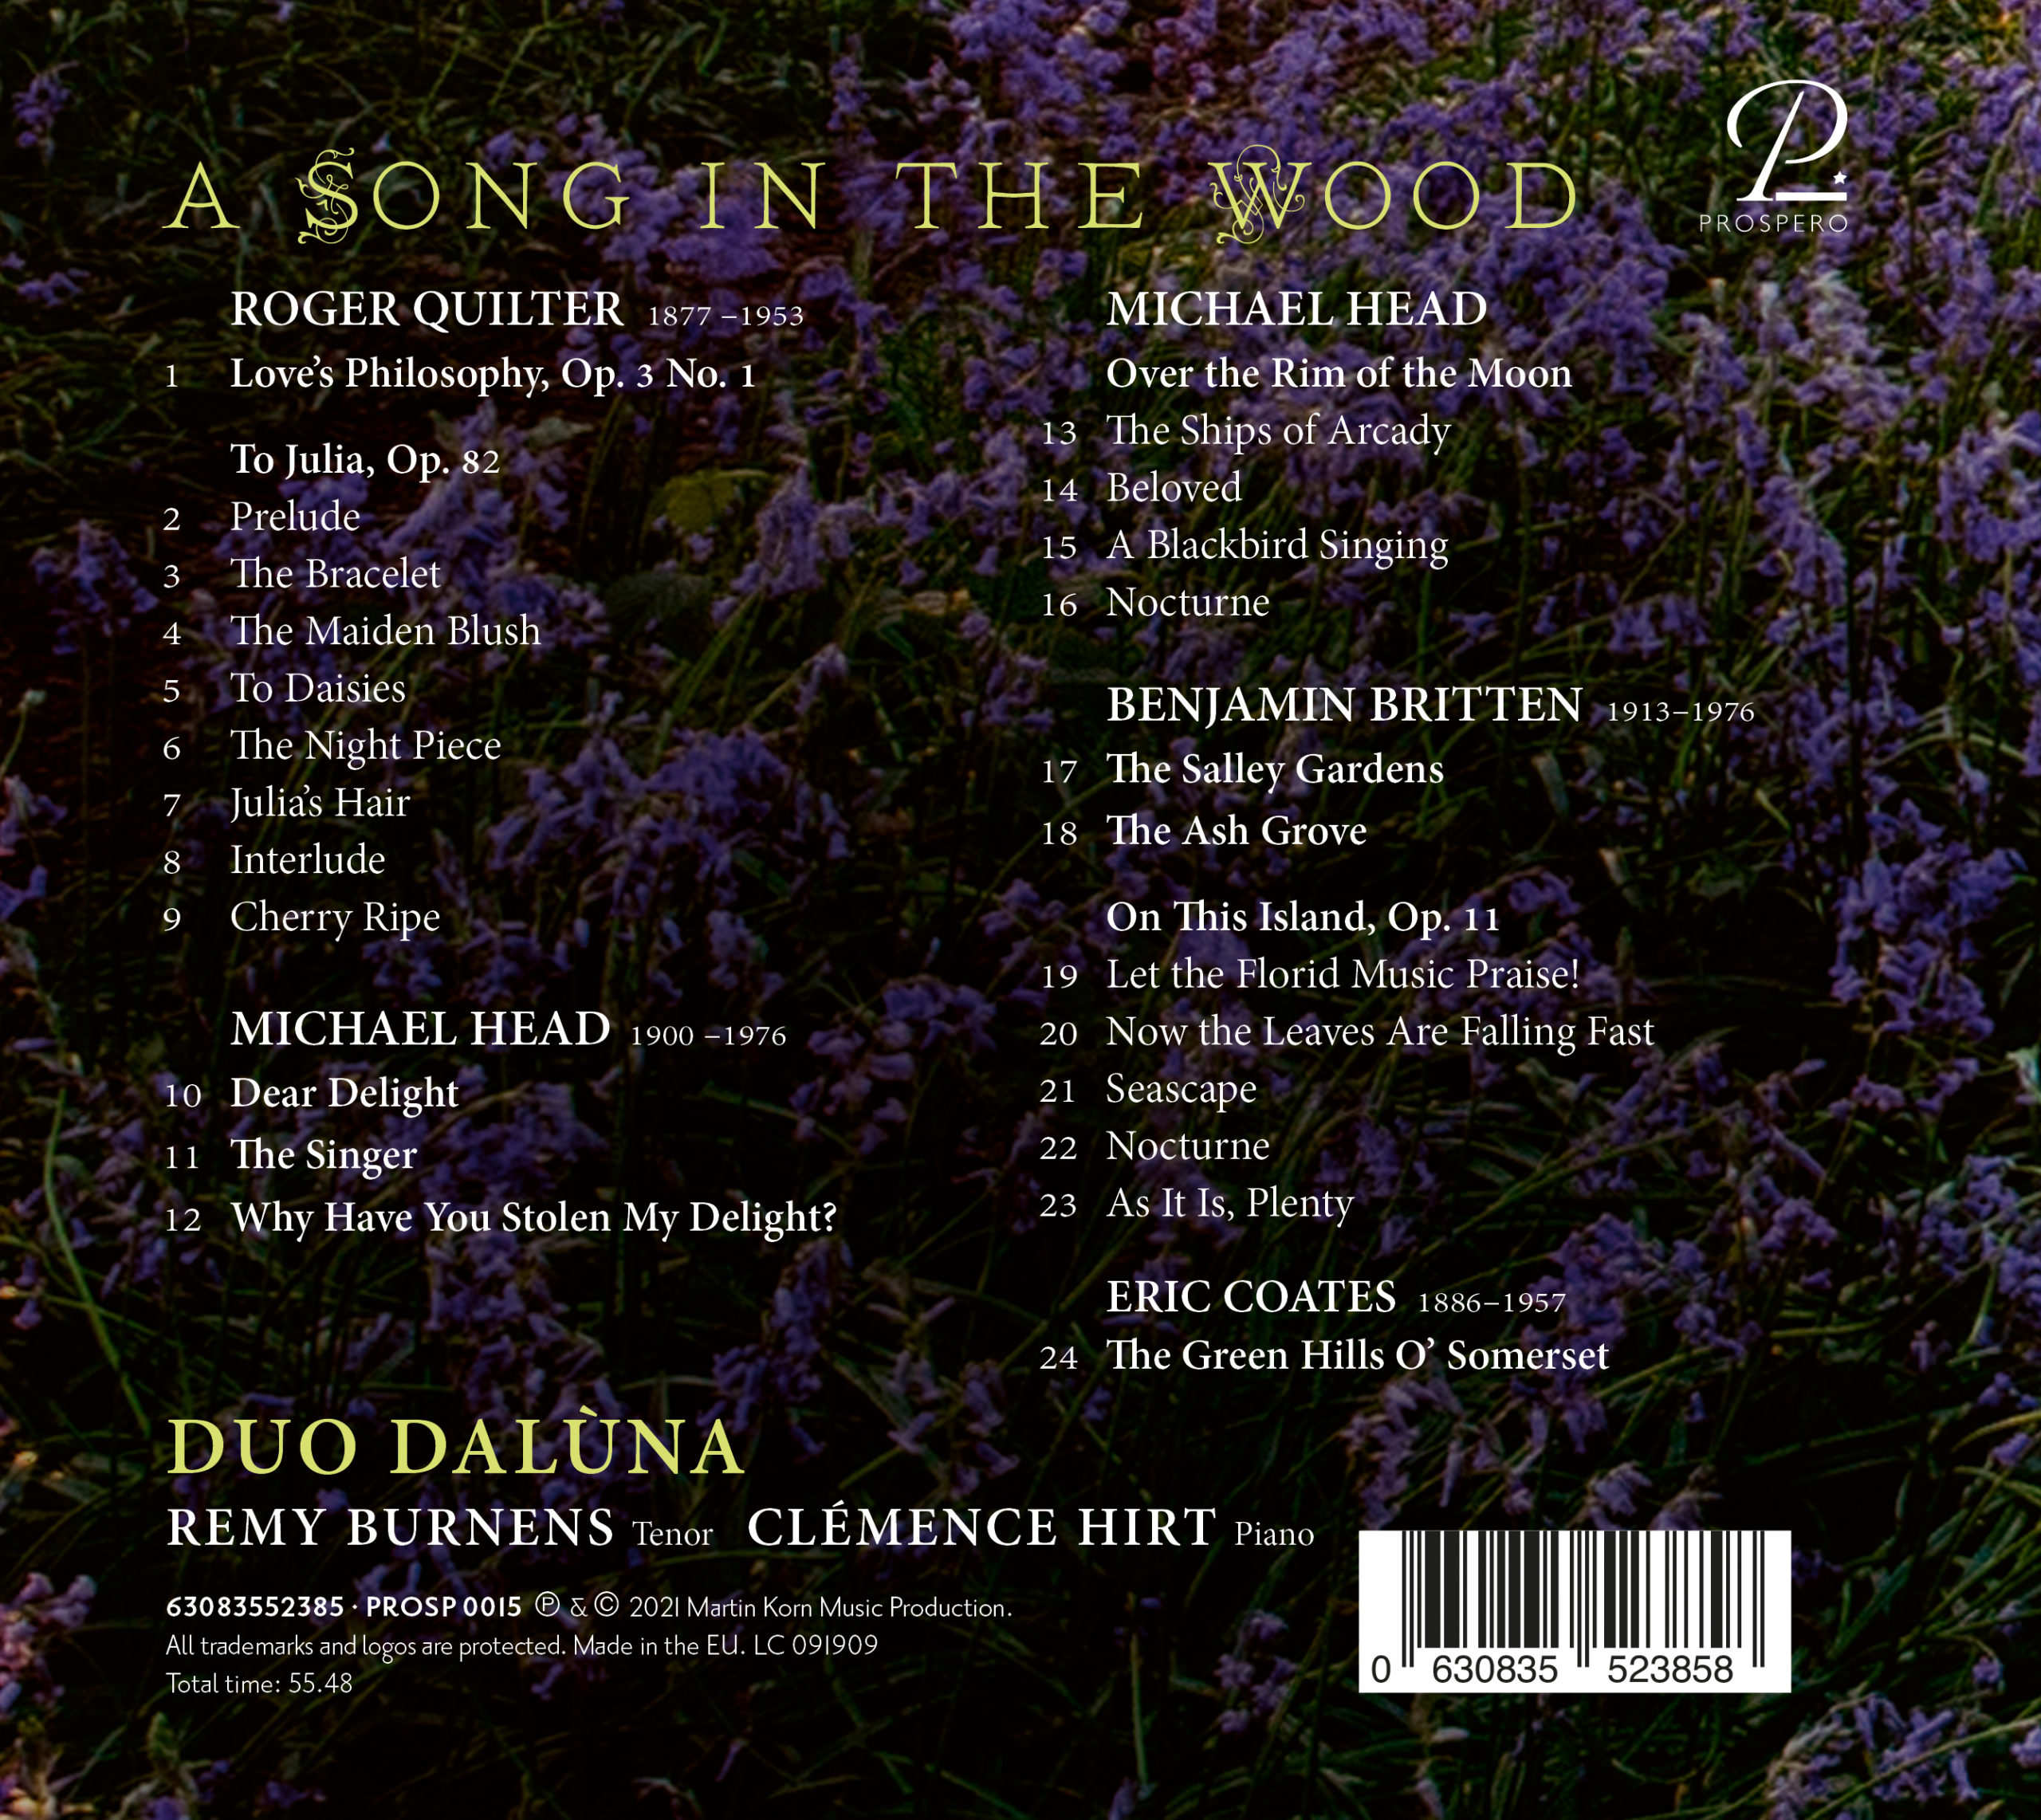 A Song in the Wood - Digipack Back